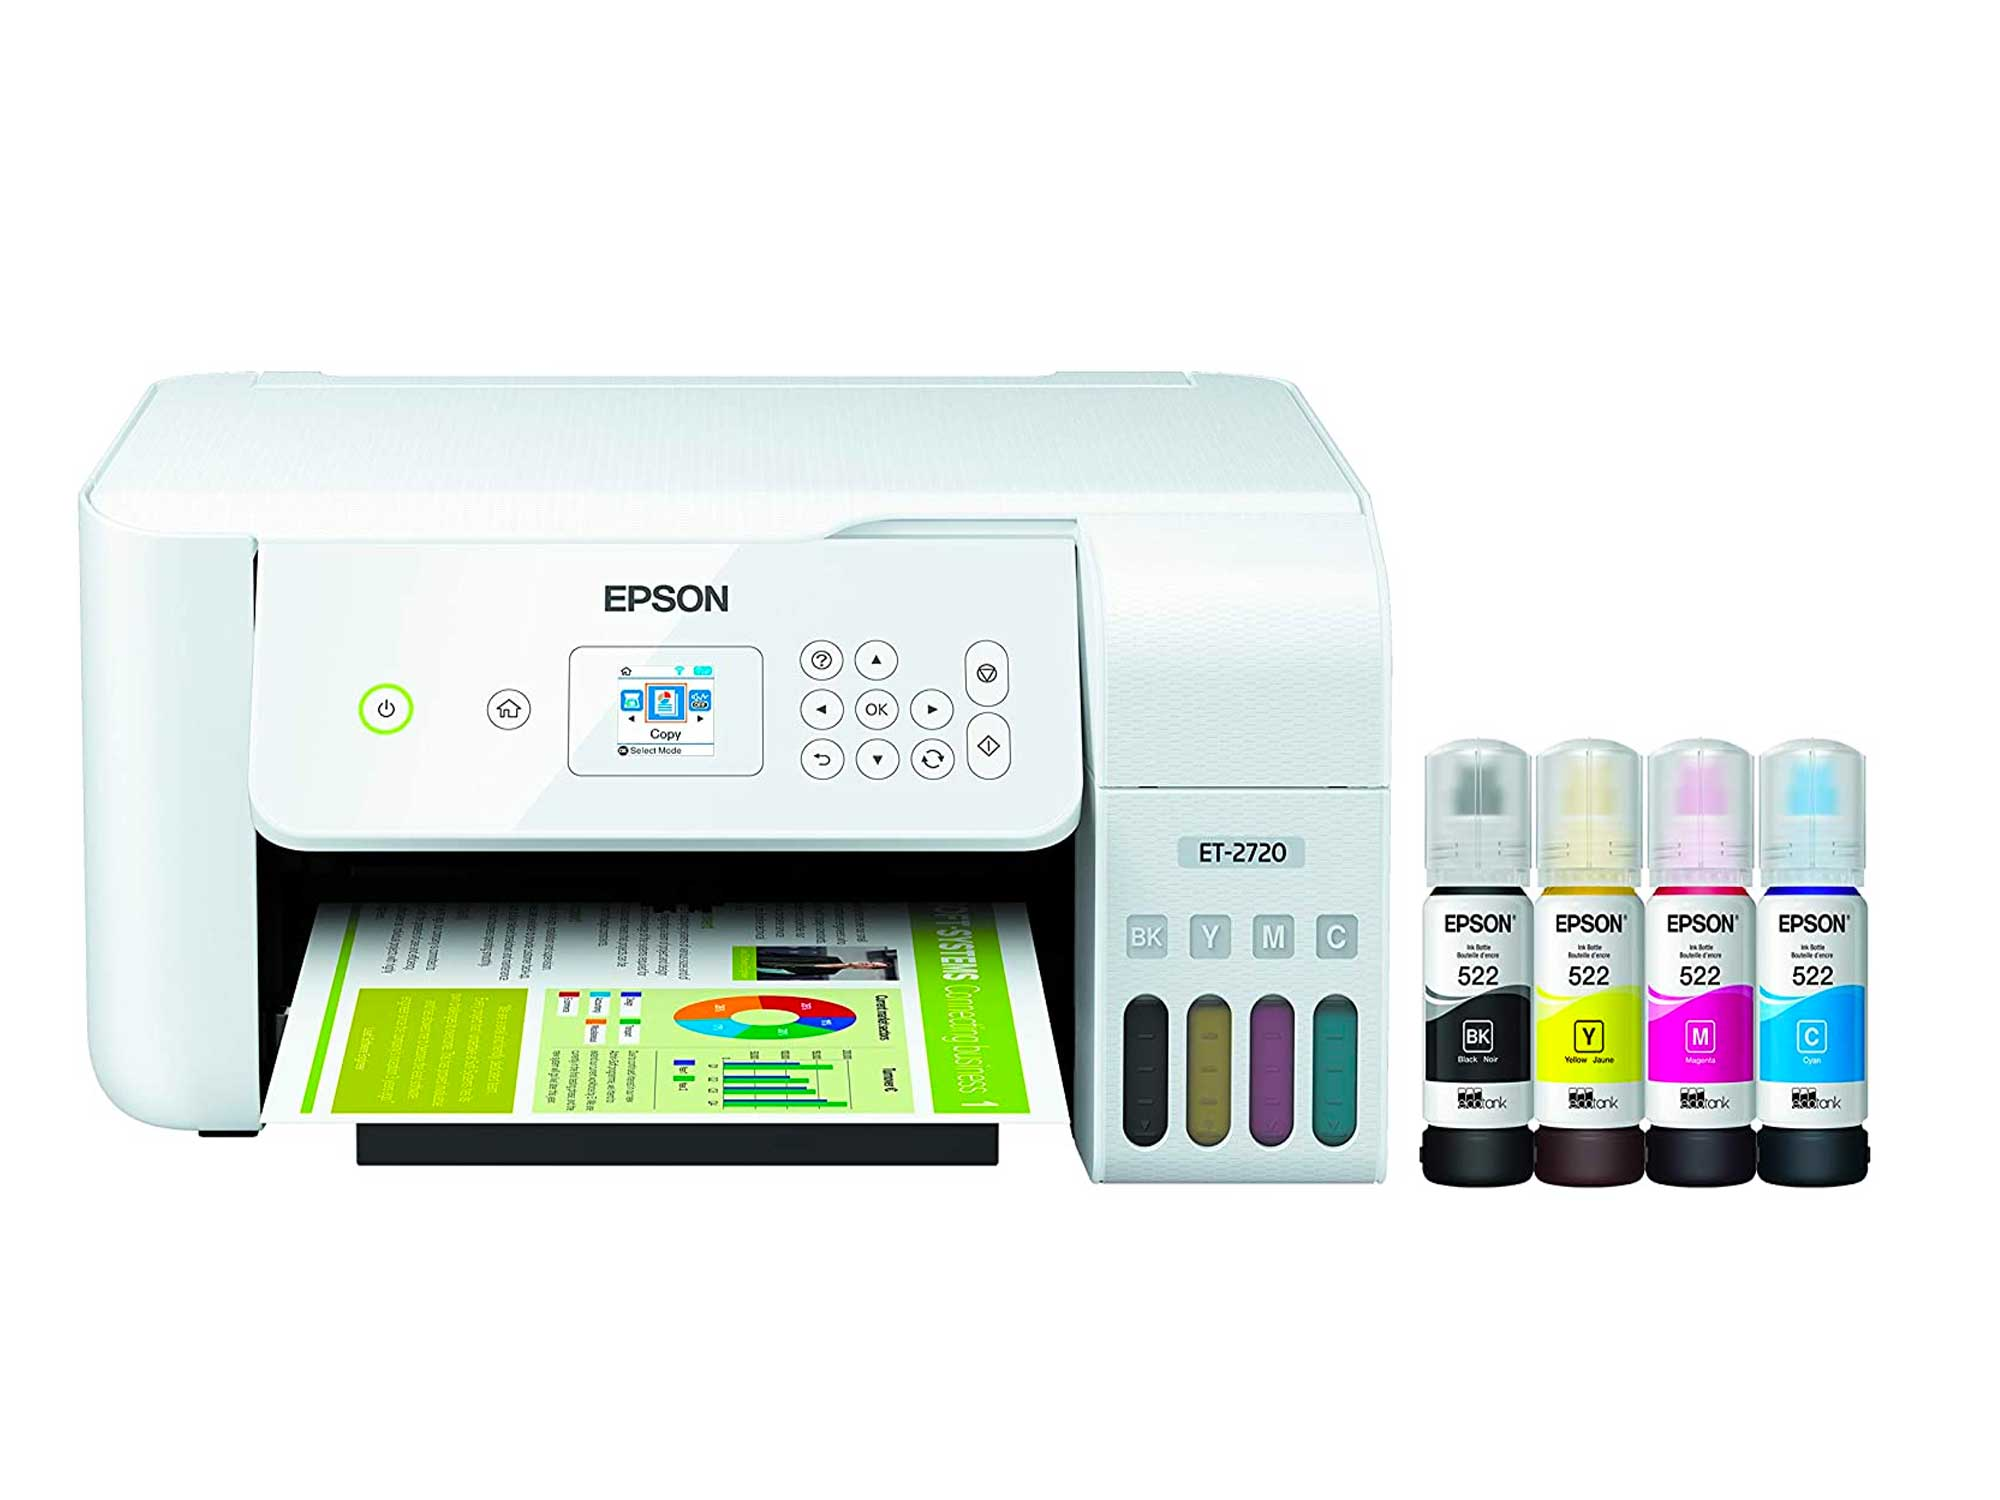 Epson EcoTank Wireless Color All-in-One Supertank Printer with Scanner and Copier